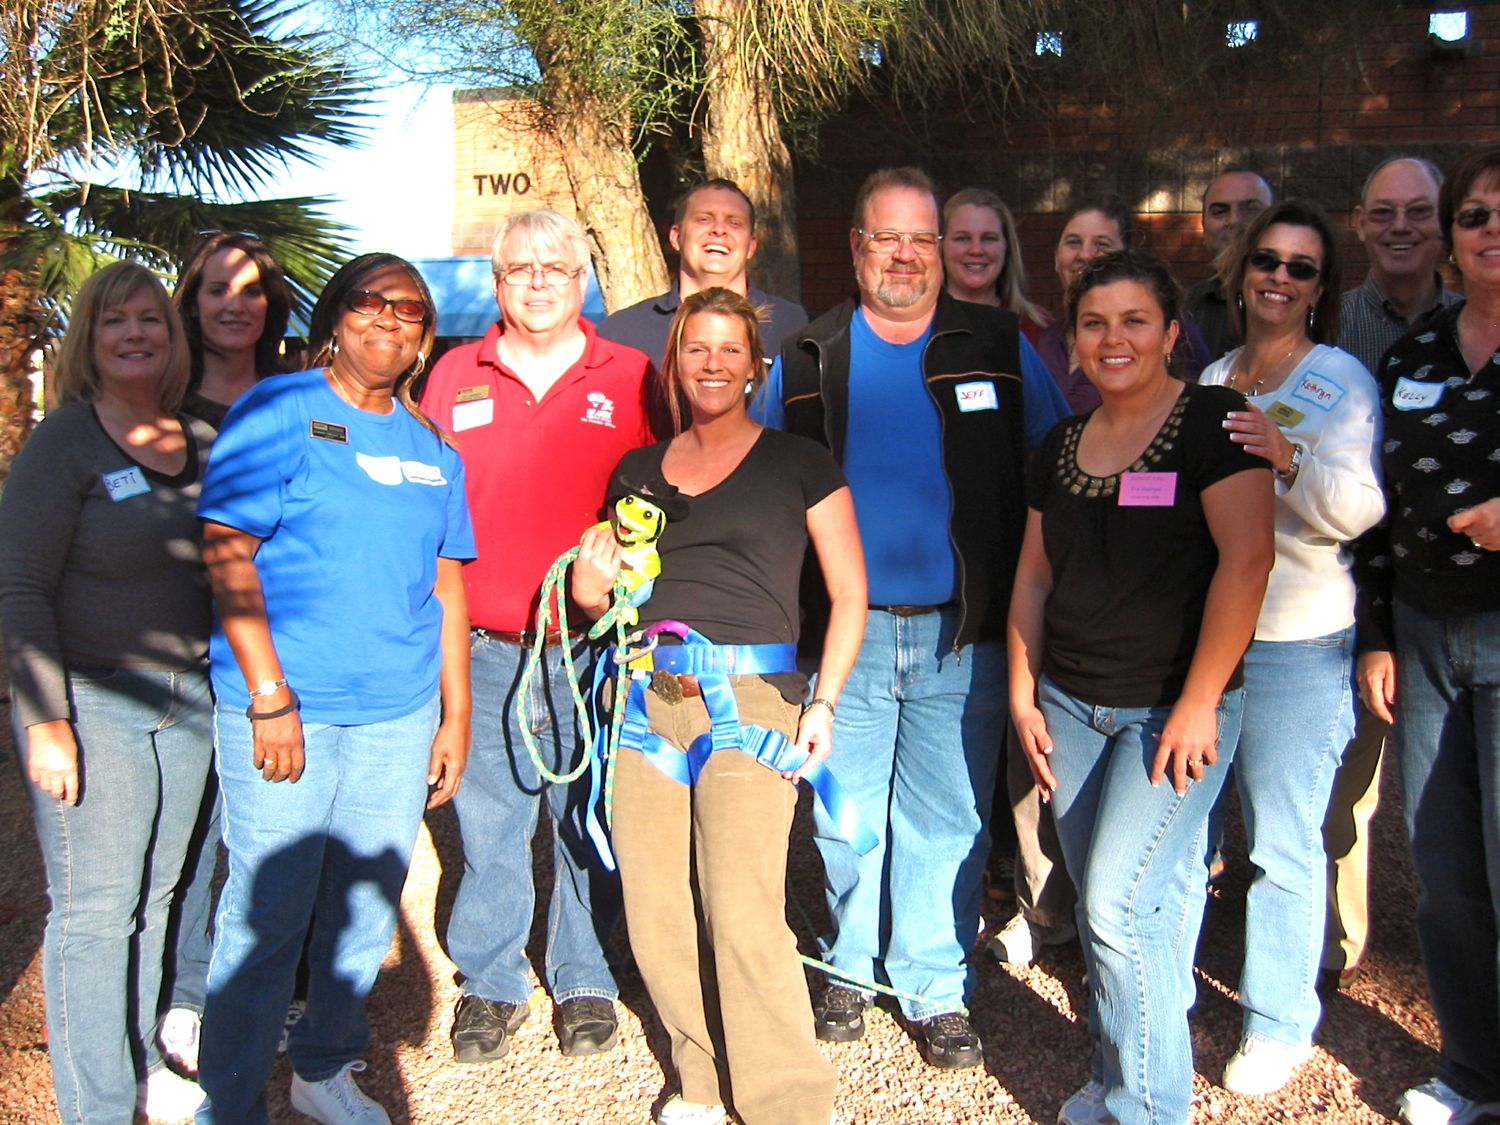 Fun corporate team building events, activities and workshops in Tucson, Arizona